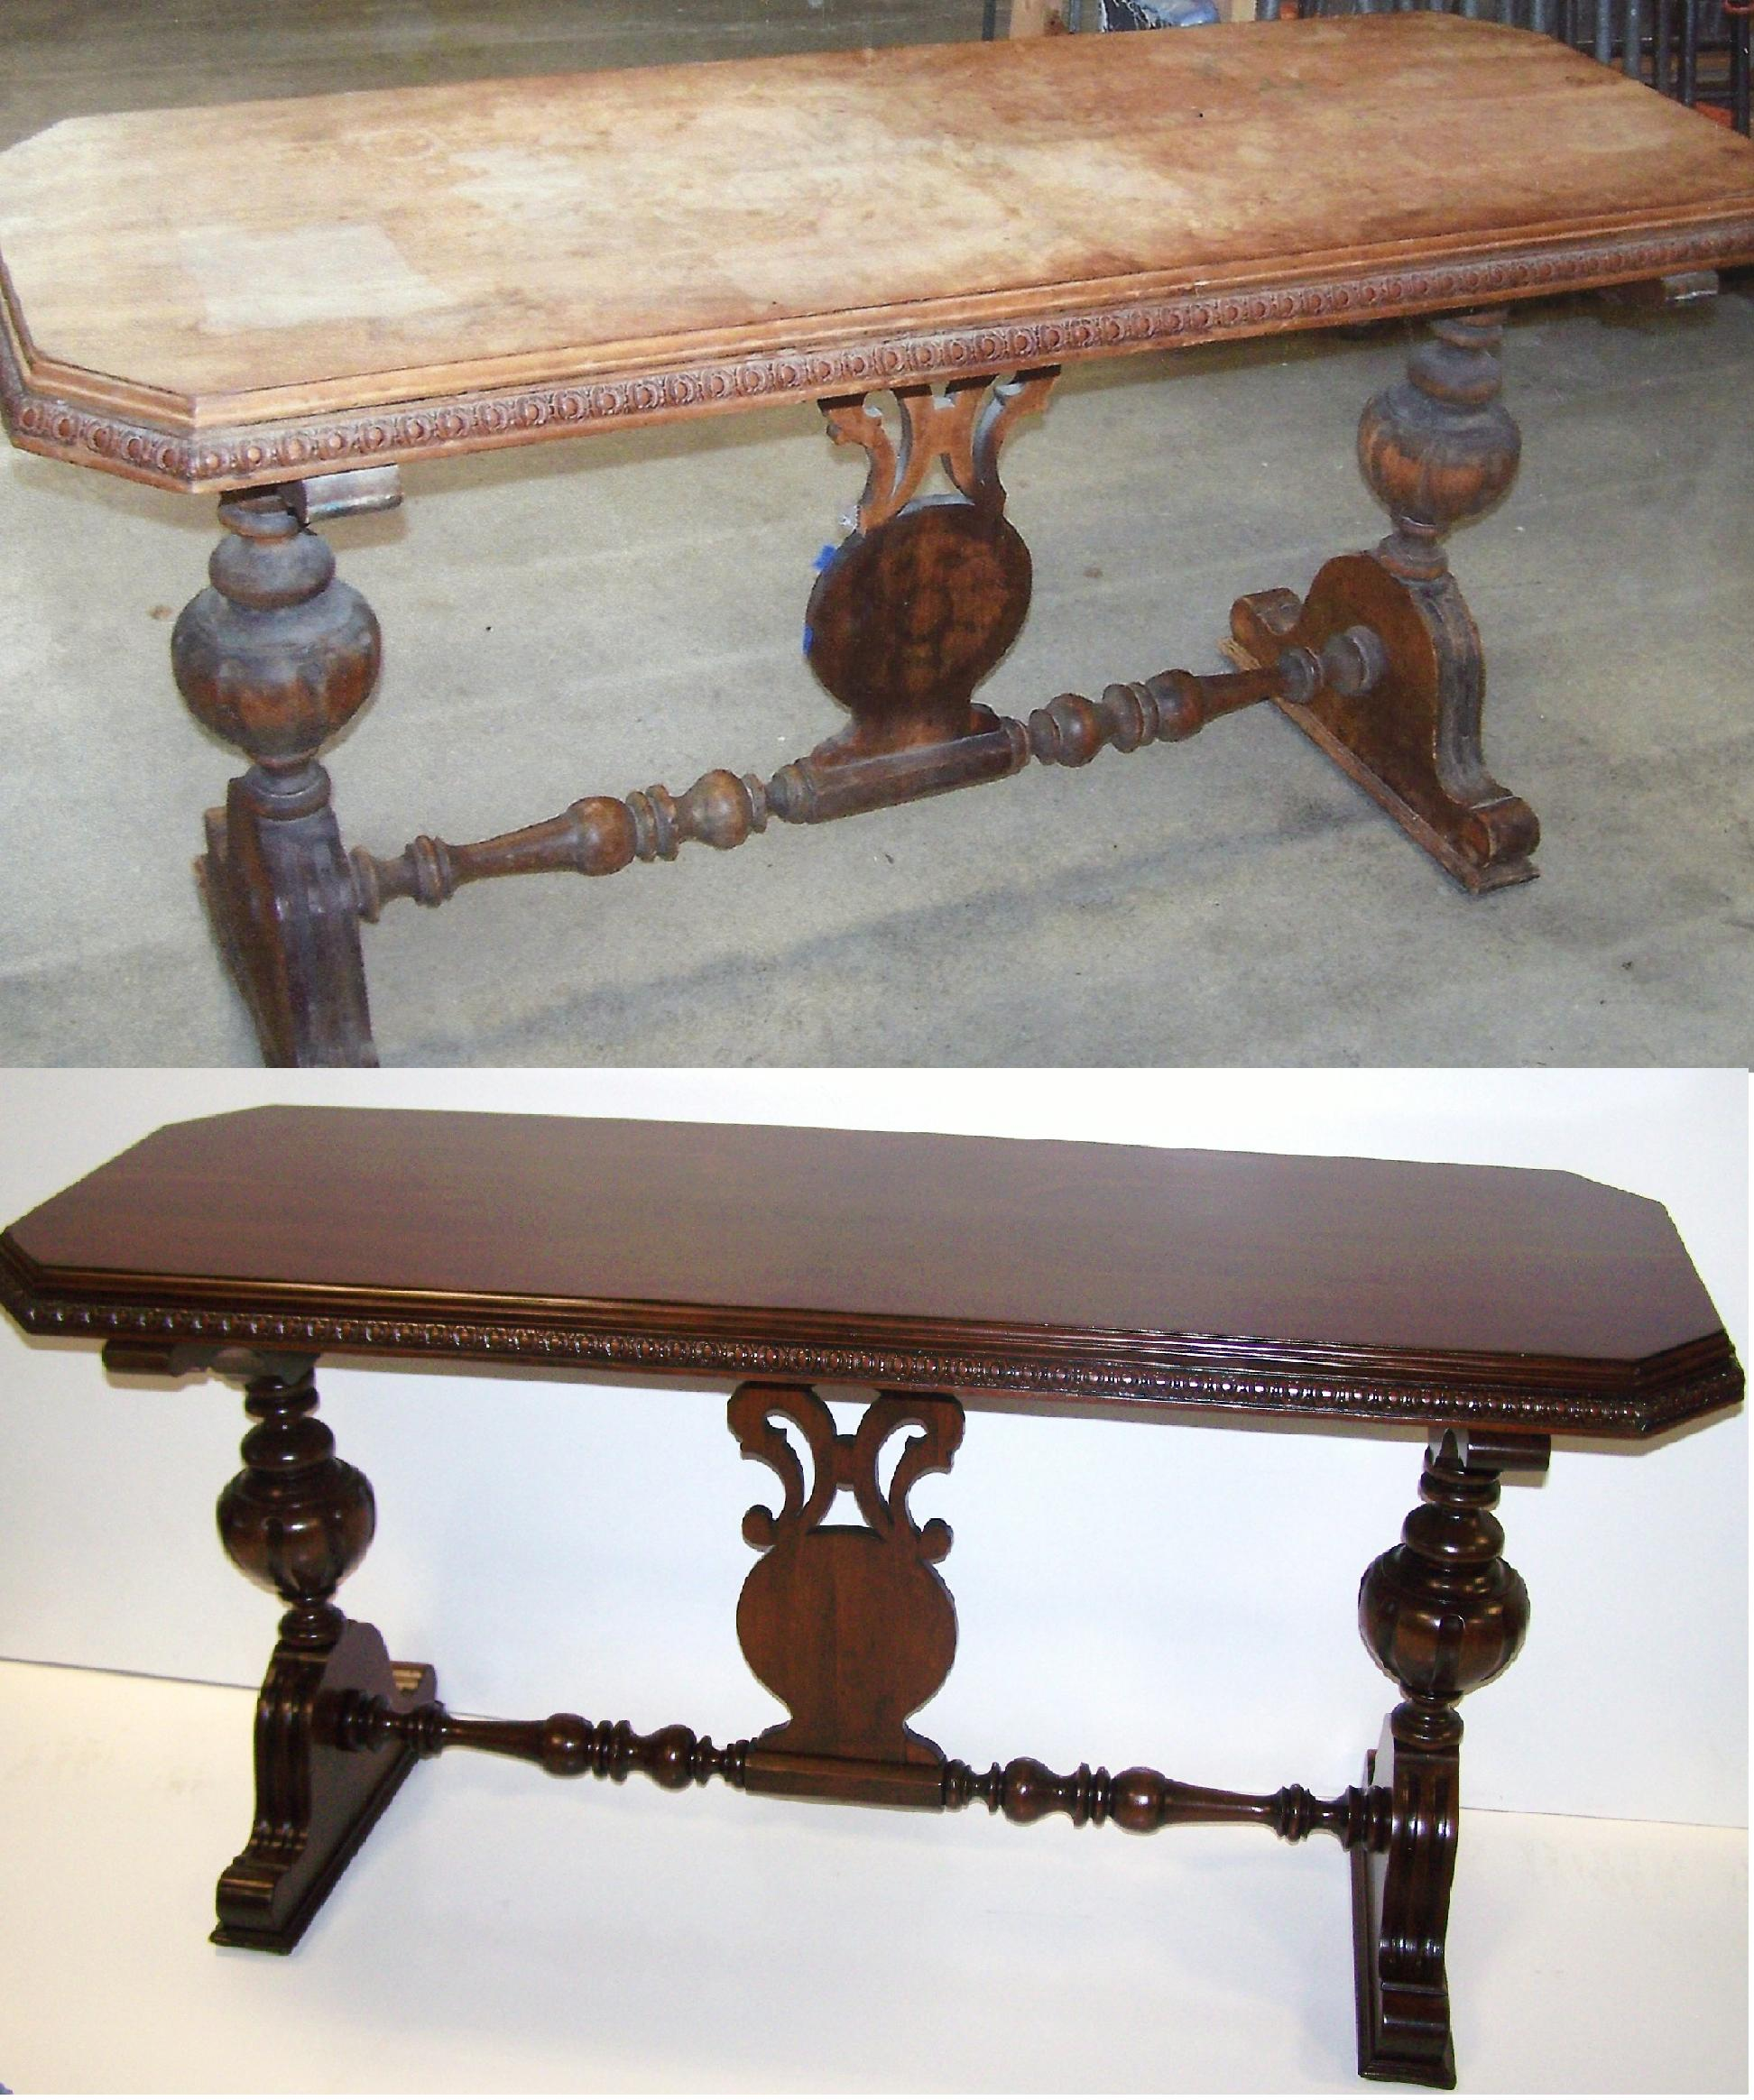 Sofa Table This Top Was Heavily Water Damaged We Restored The Entire Piece To Fit The Customers Decor